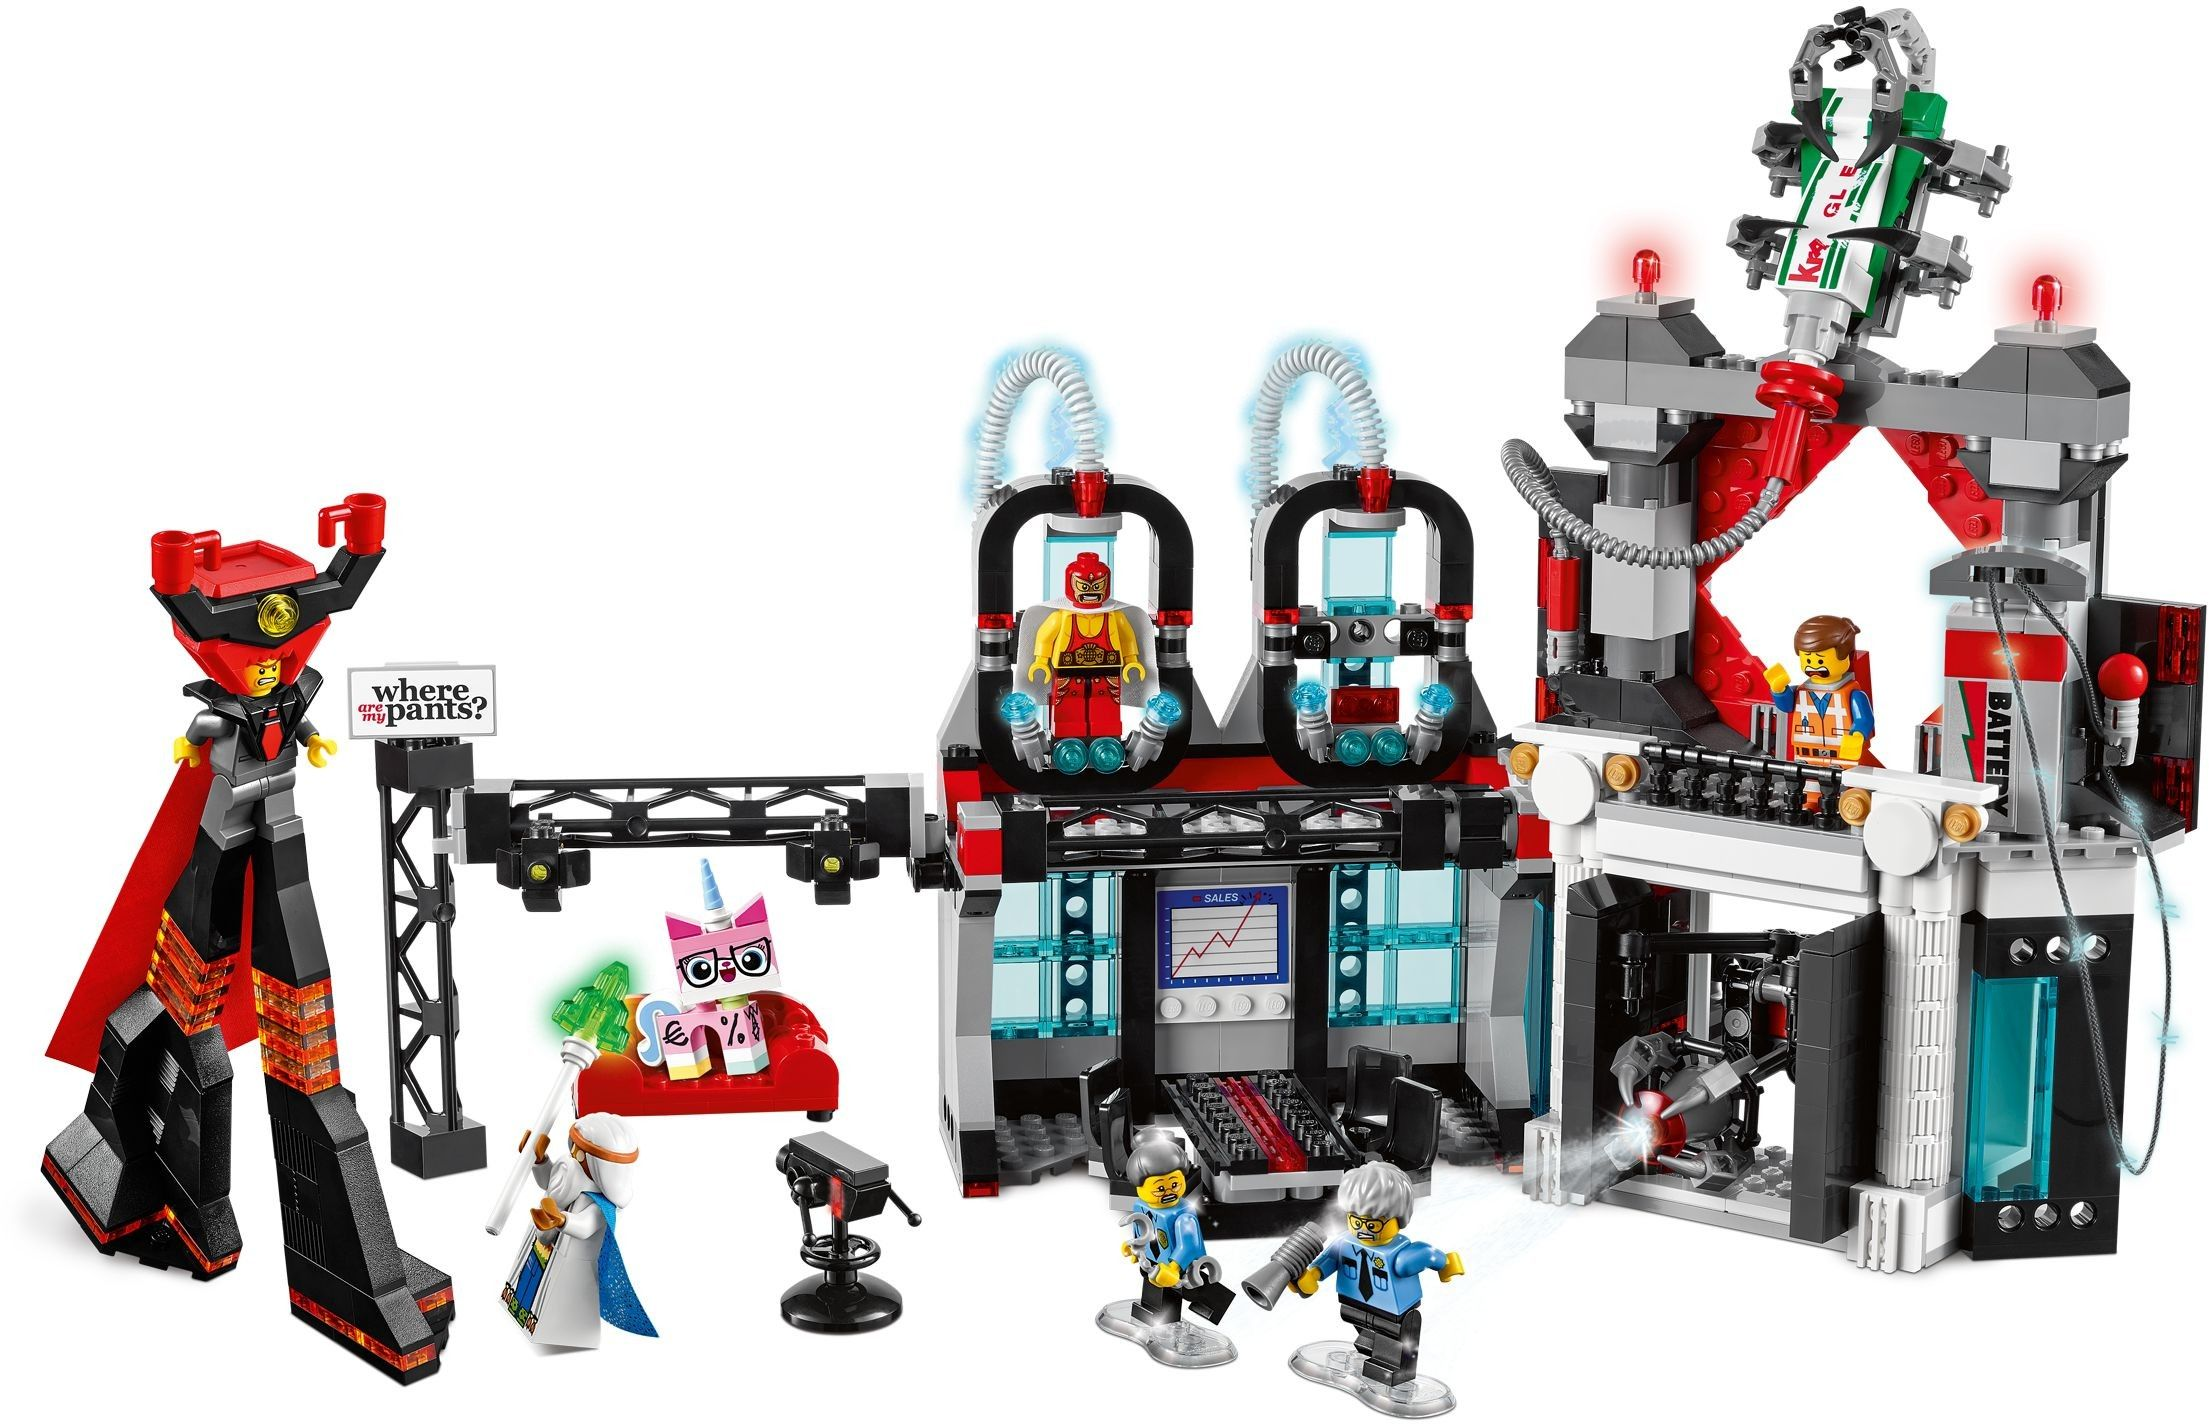 70809 1 Lord Business Evil Lair Lego Movie Sets Lego Movie Lego Sets